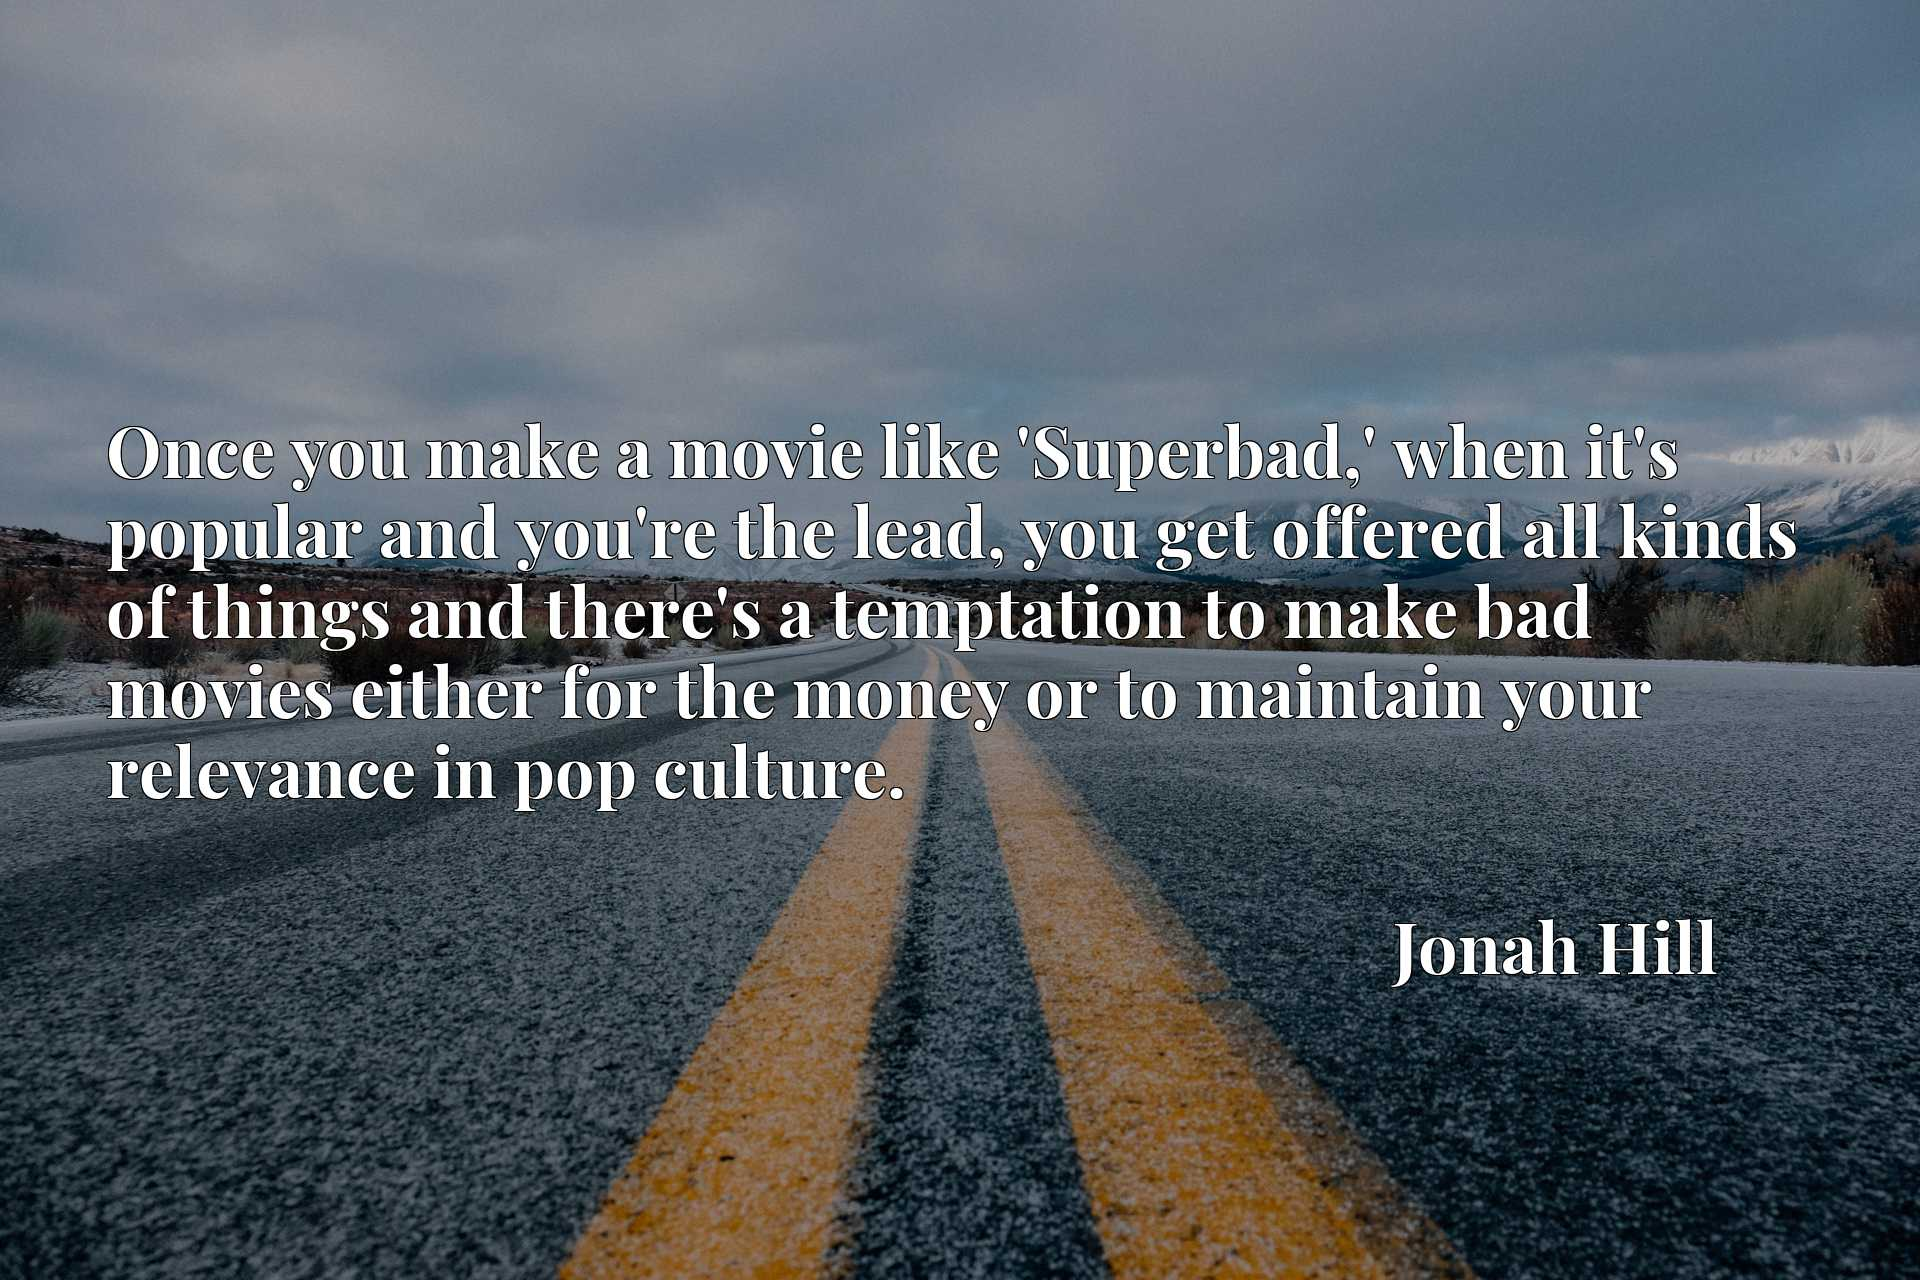 Once you make a movie like 'Superbad,' when it's popular and you're the lead, you get offered all kinds of things and there's a temptation to make bad movies either for the money or to maintain your relevance in pop culture.